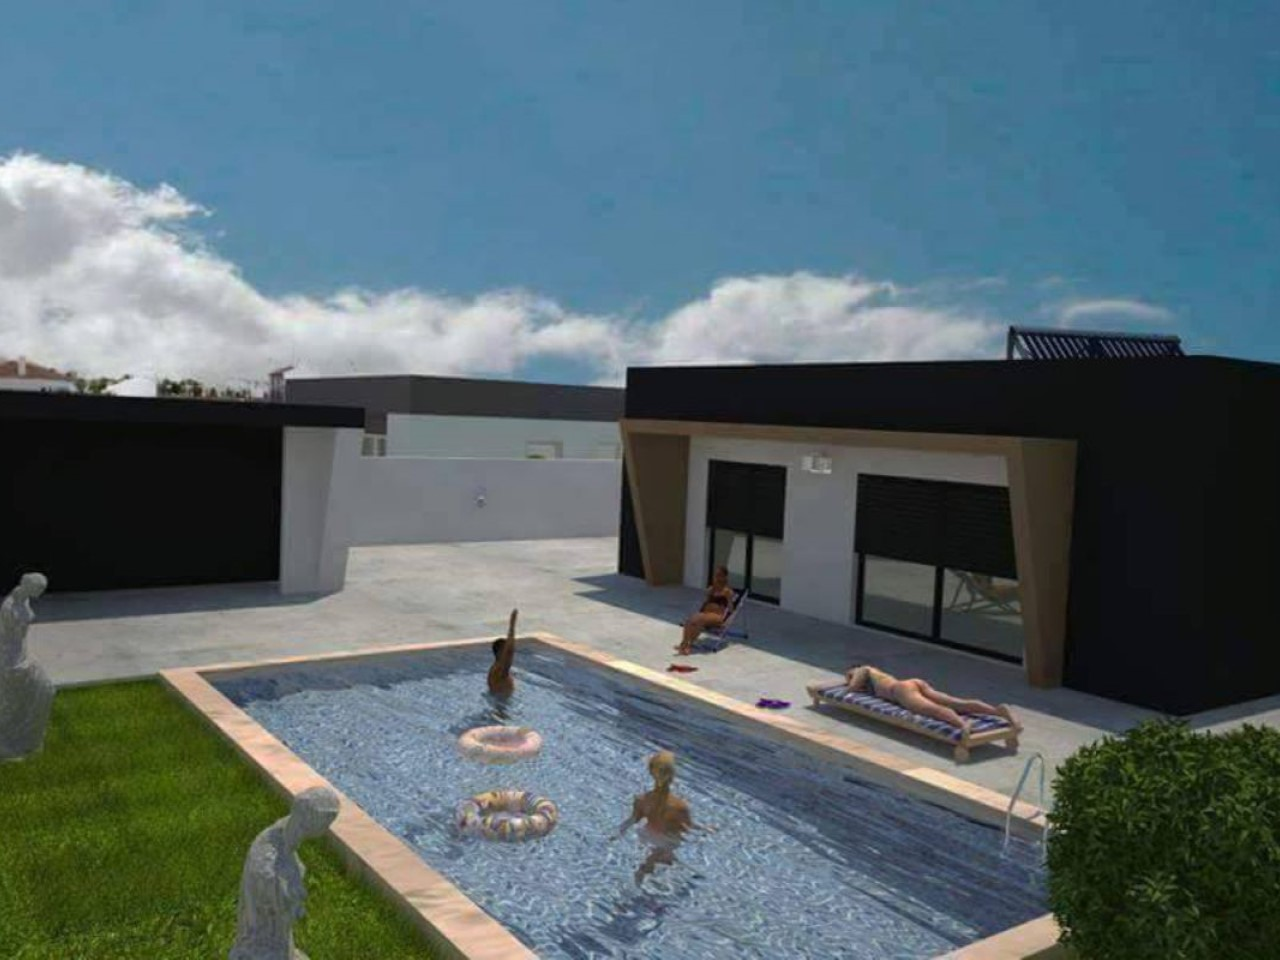 Modern 3 bedroom house, in project, on a 652 m2 plot - Bom Sucesso, Ób